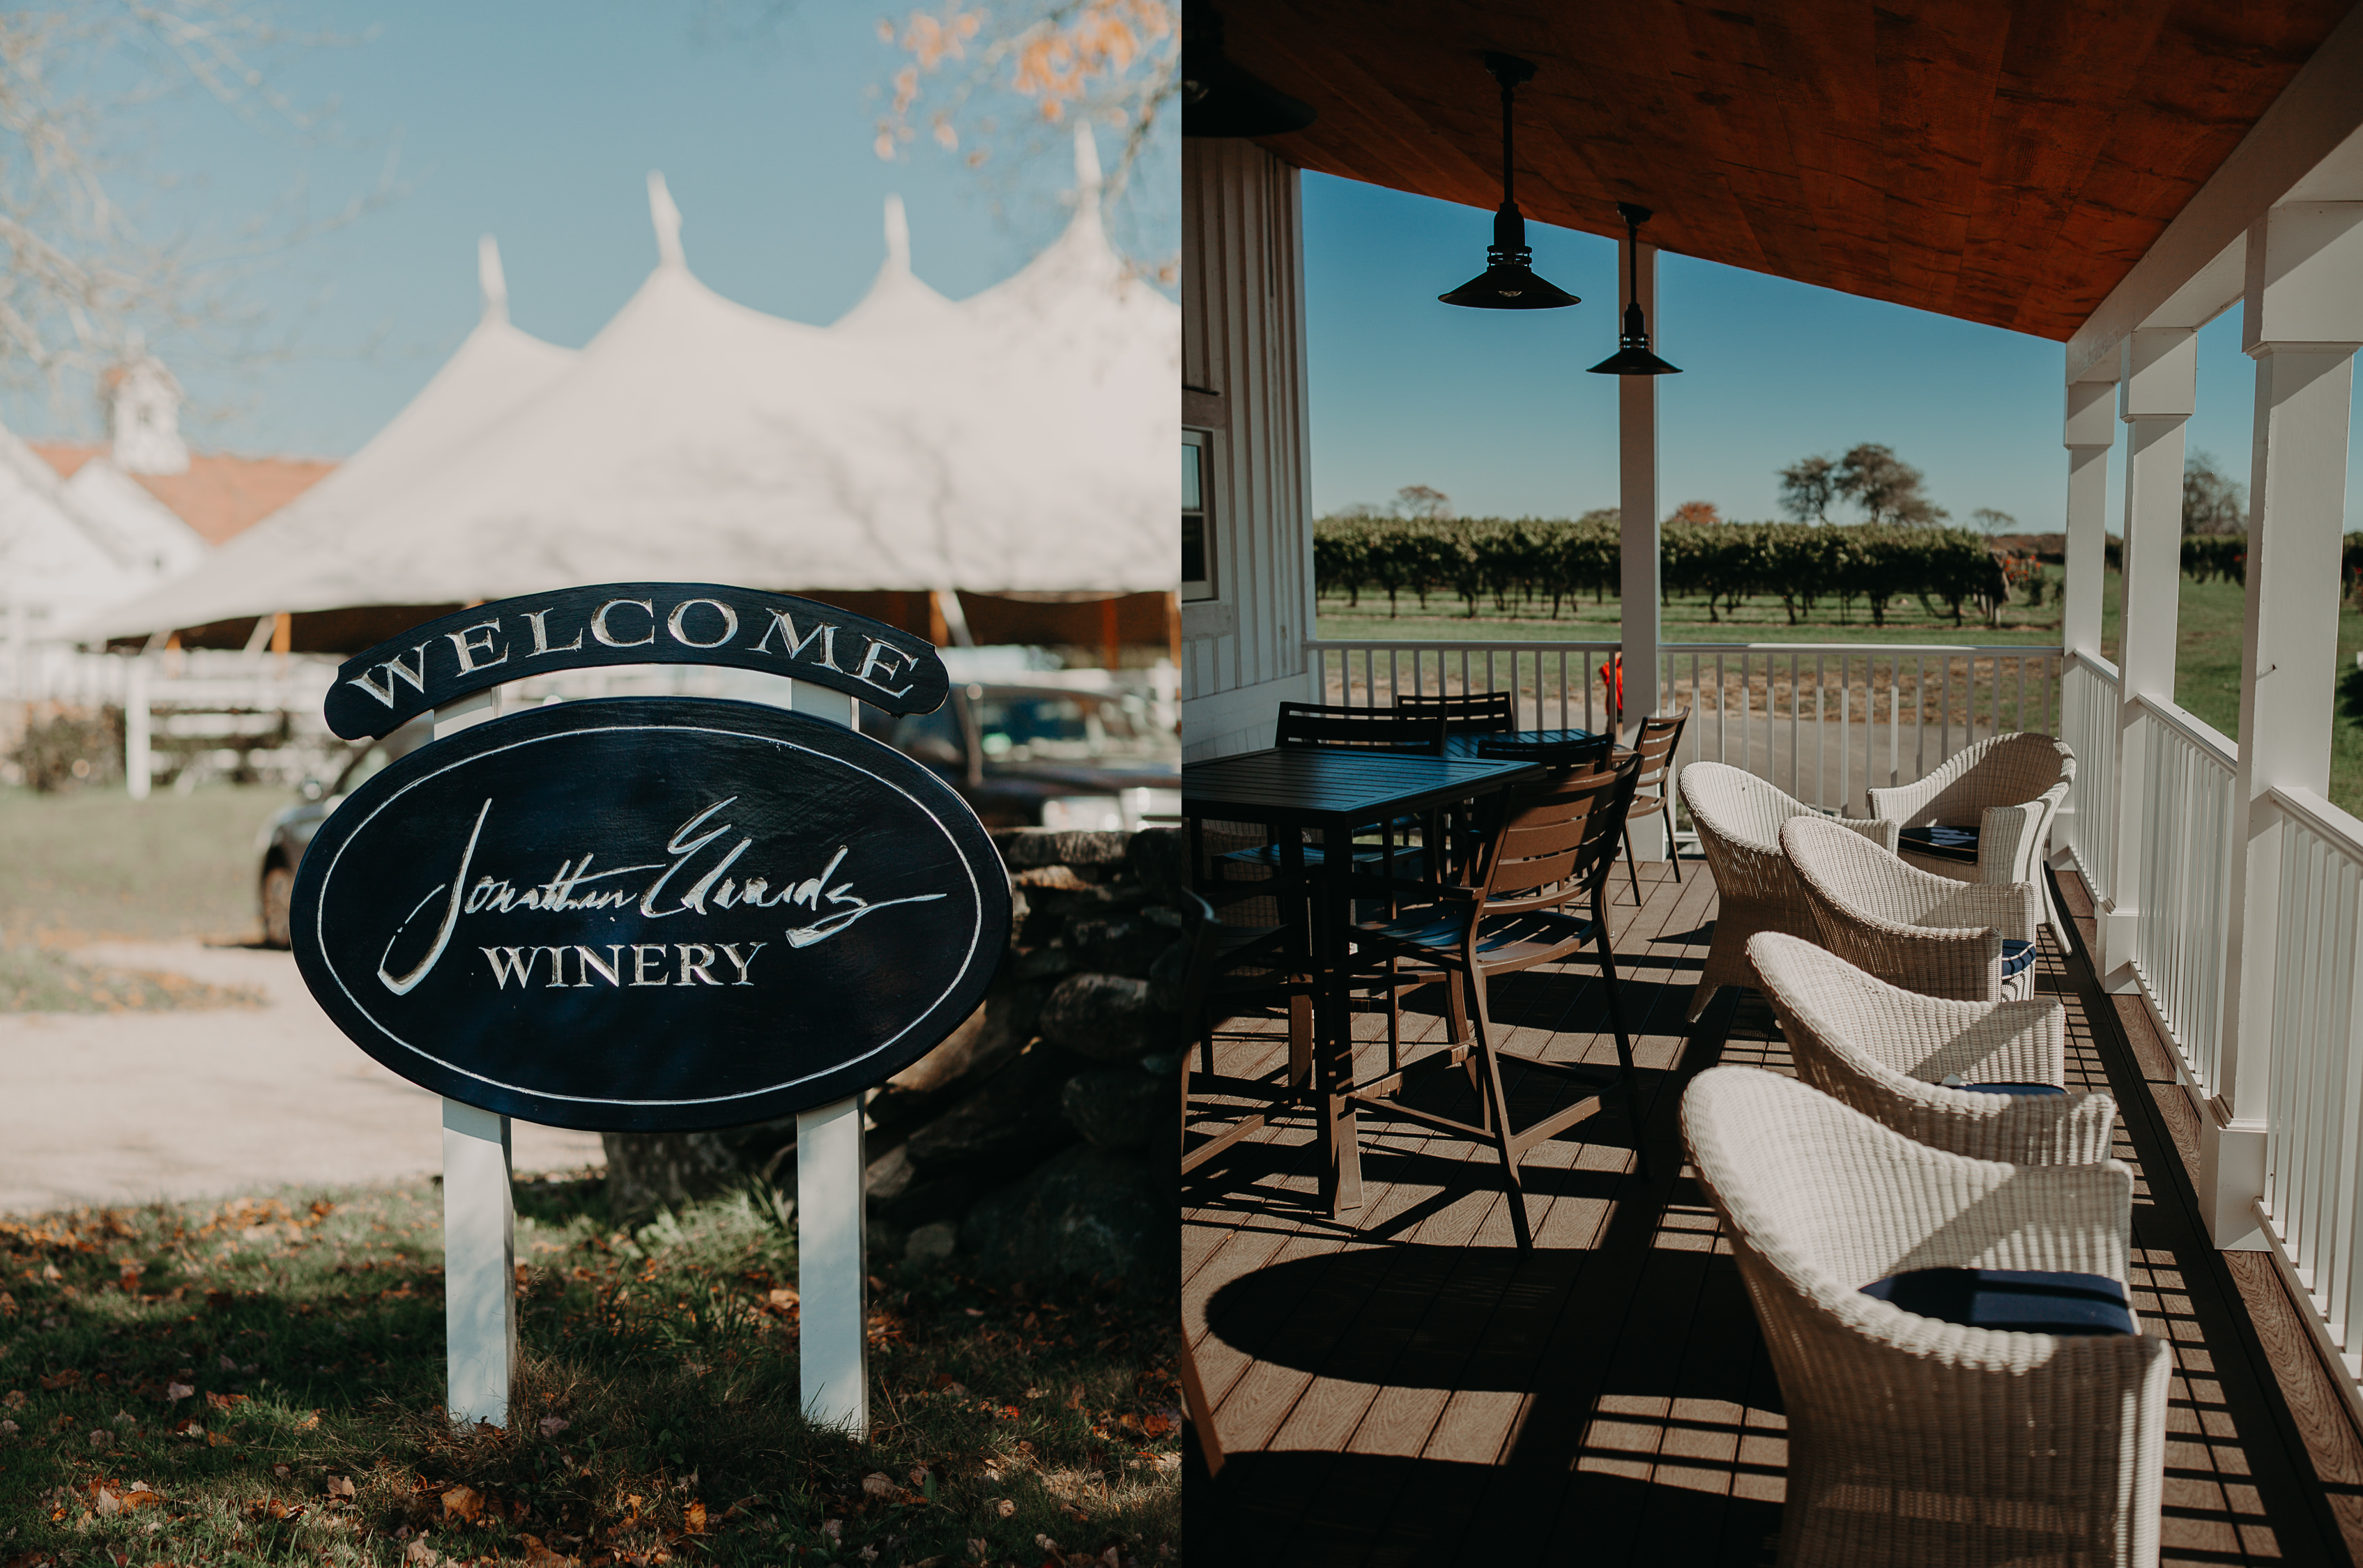 intimate wedding, Connecticut wedding, winery, destination wedding photographer, boho bride, boho wedding, fall wedding, outdoor wedding, elopement photographer